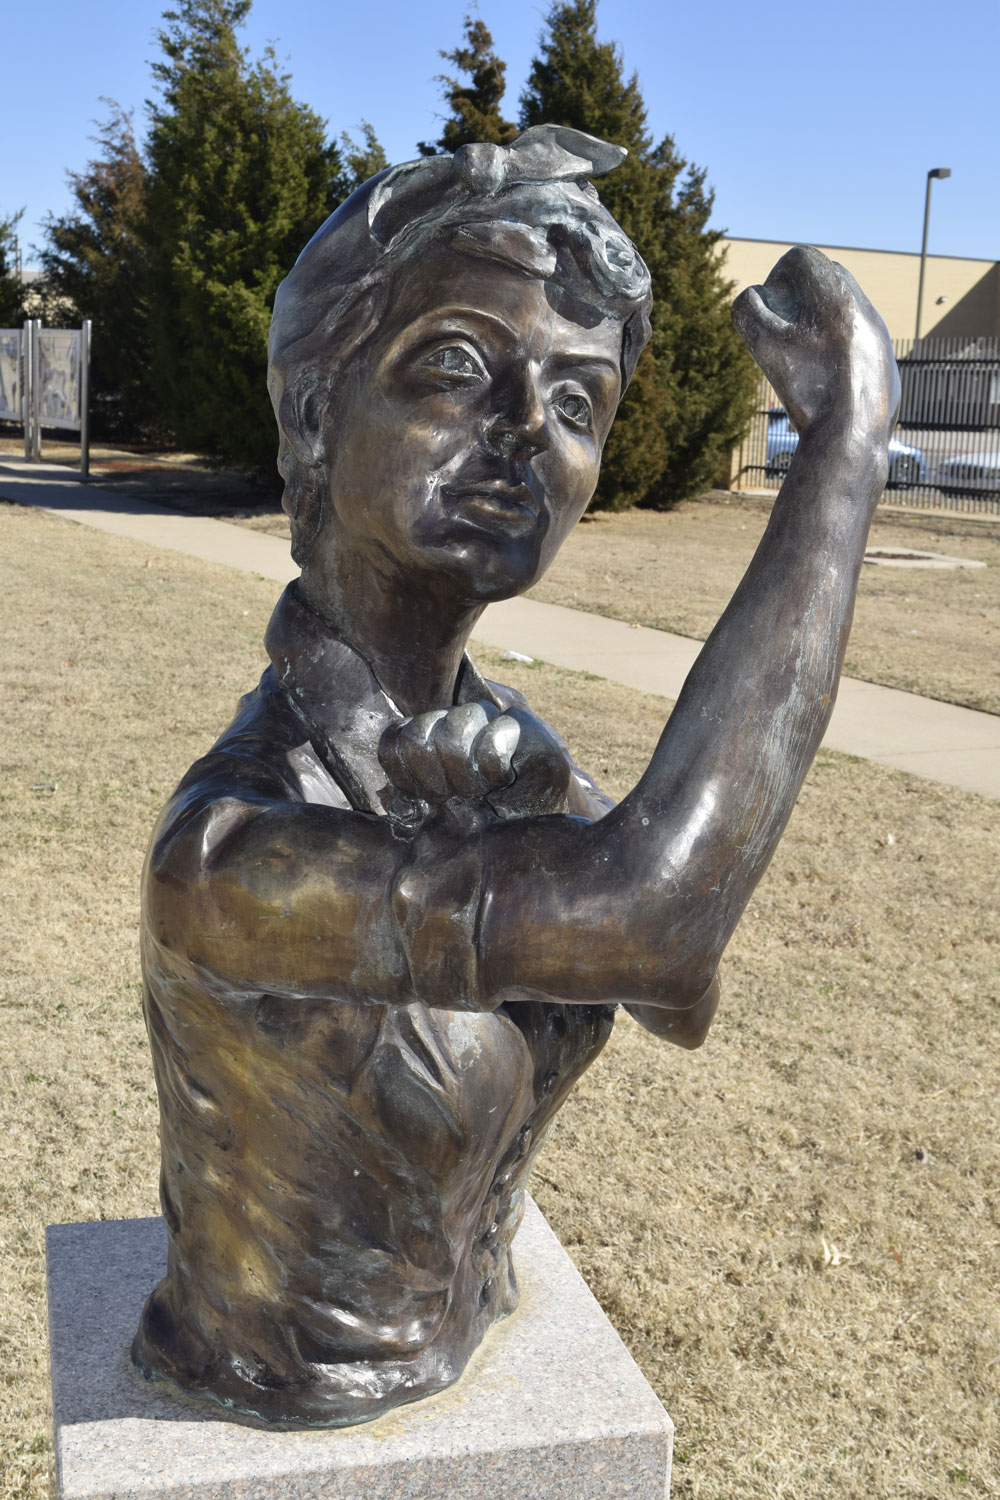 Rosie the Riveter rolls up her sleeve in this bronze bust symbolizing the contributions to the war-effort made during and after World-War II by women in the Charles B. Hall Memorial Air Park at Tinker Air Force Base, Oklahoma.